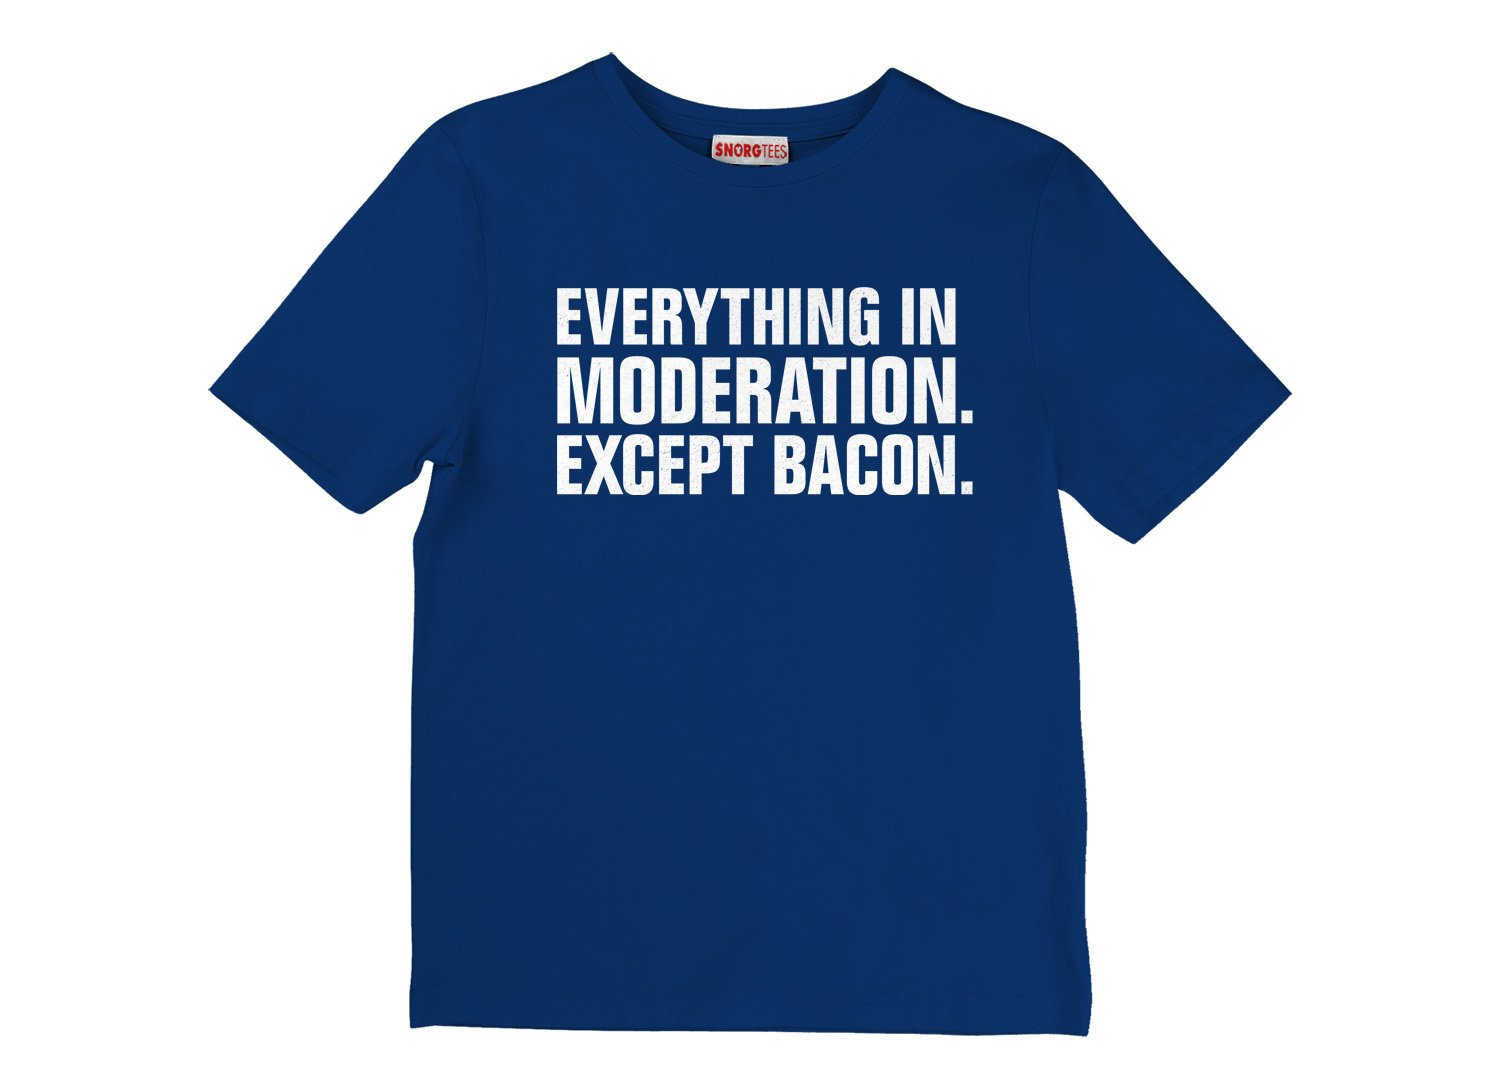 Everything In Moderation. Except Bacon. on Kids T-Shirt